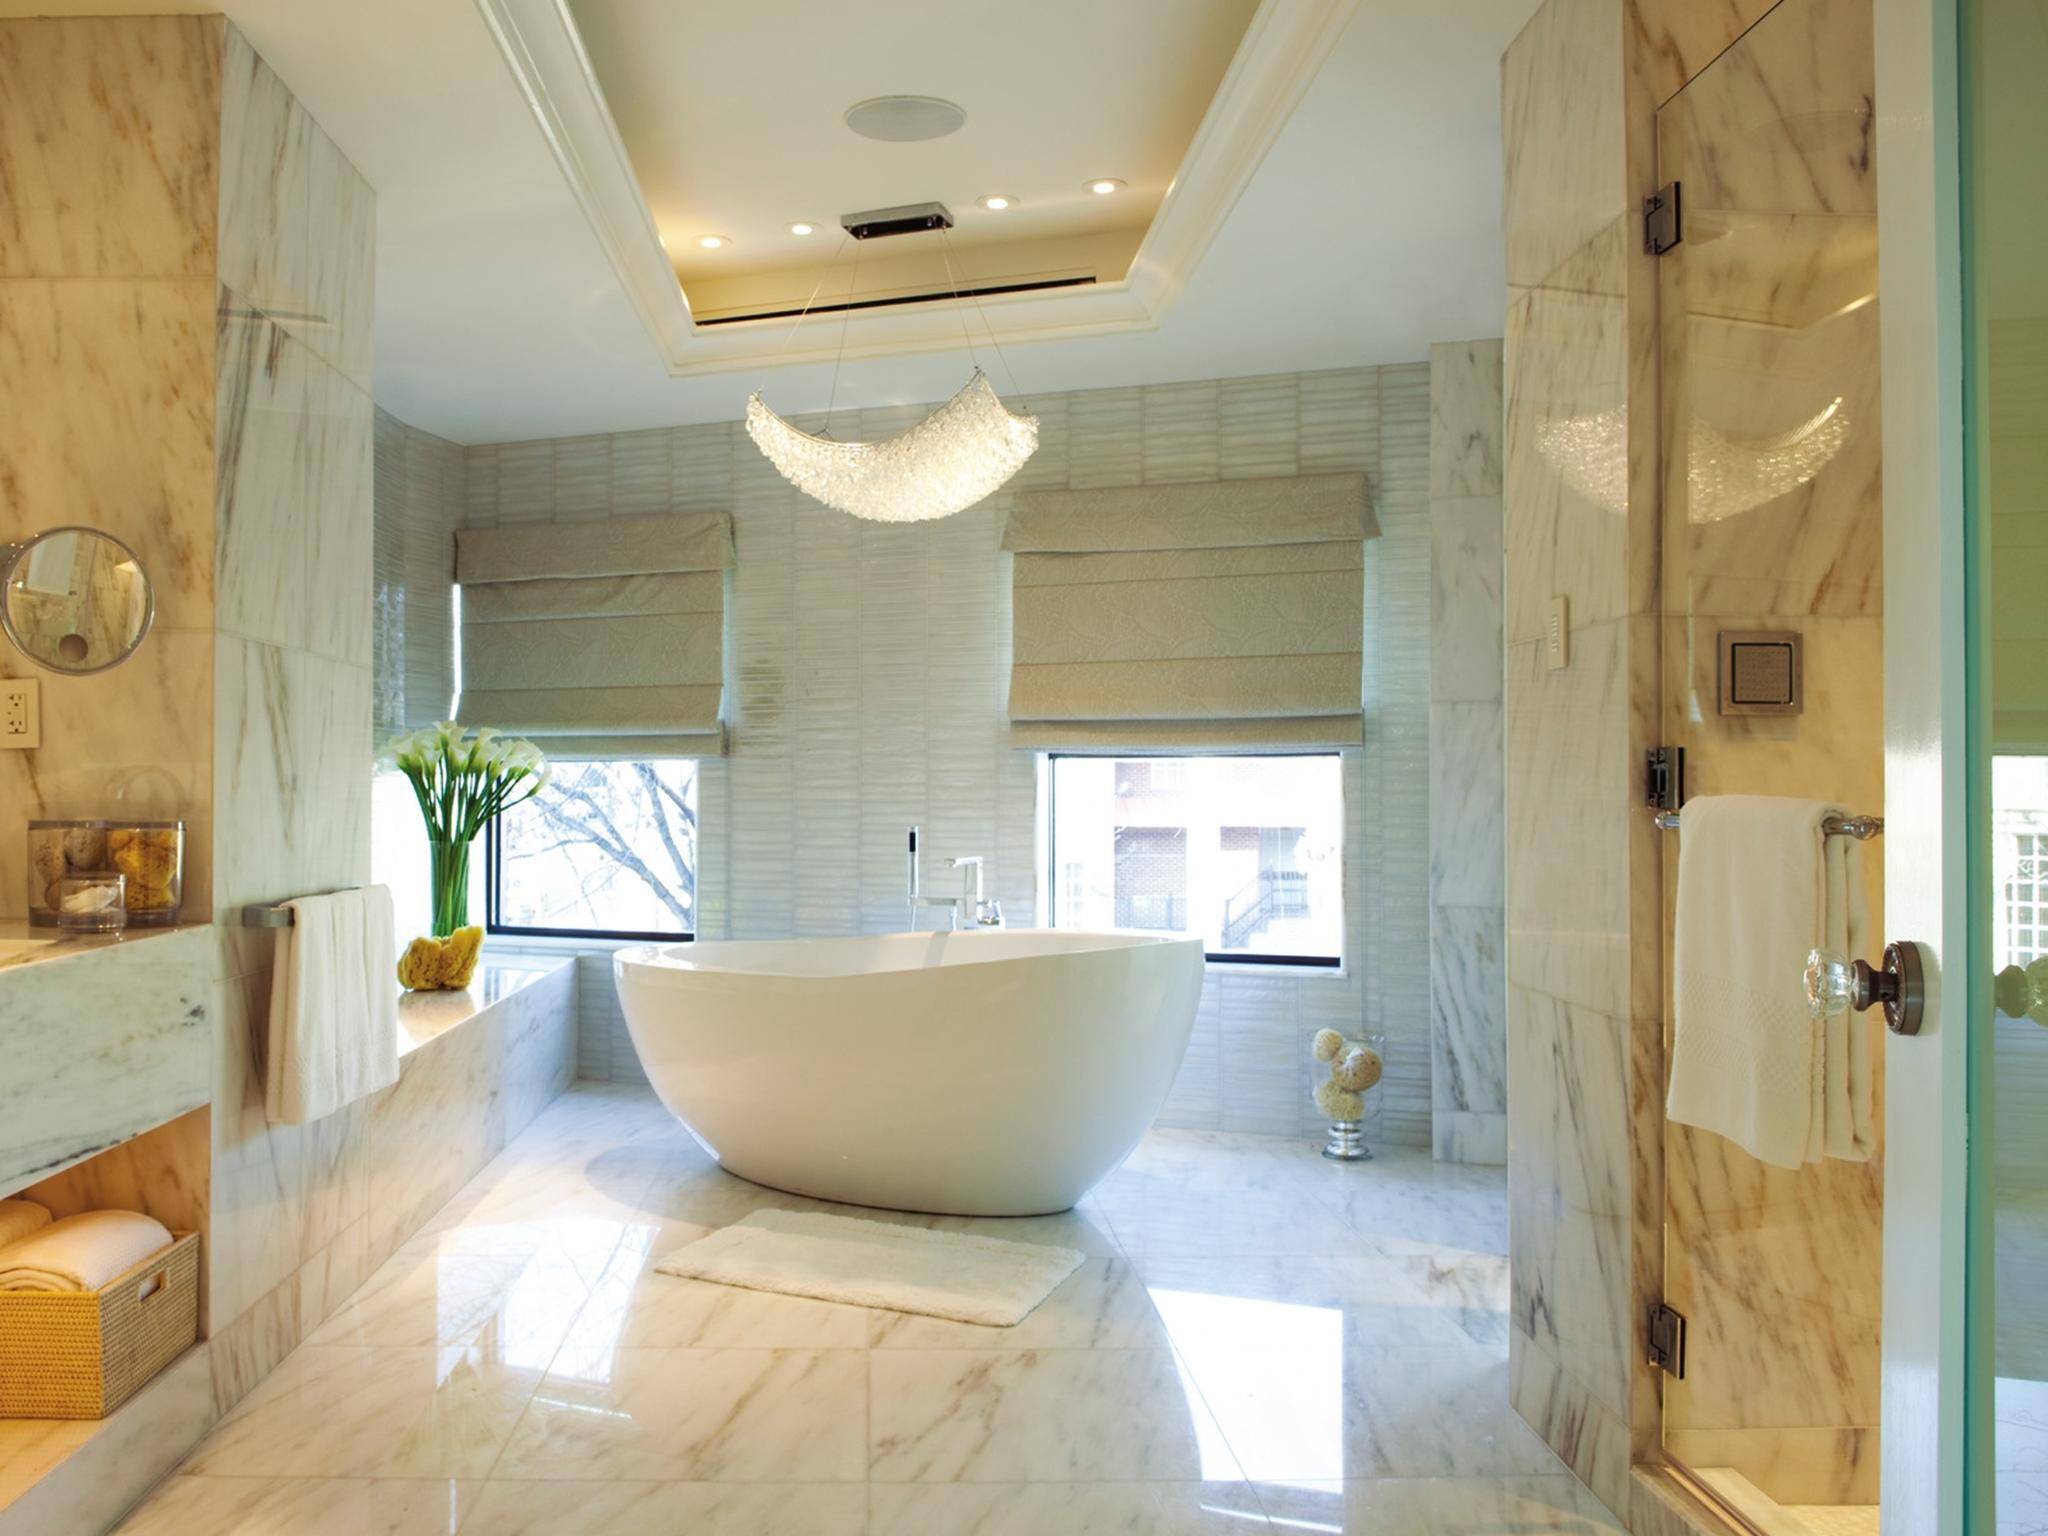 bathrooms | Creative Living & Design for the Apartment, Condo ...